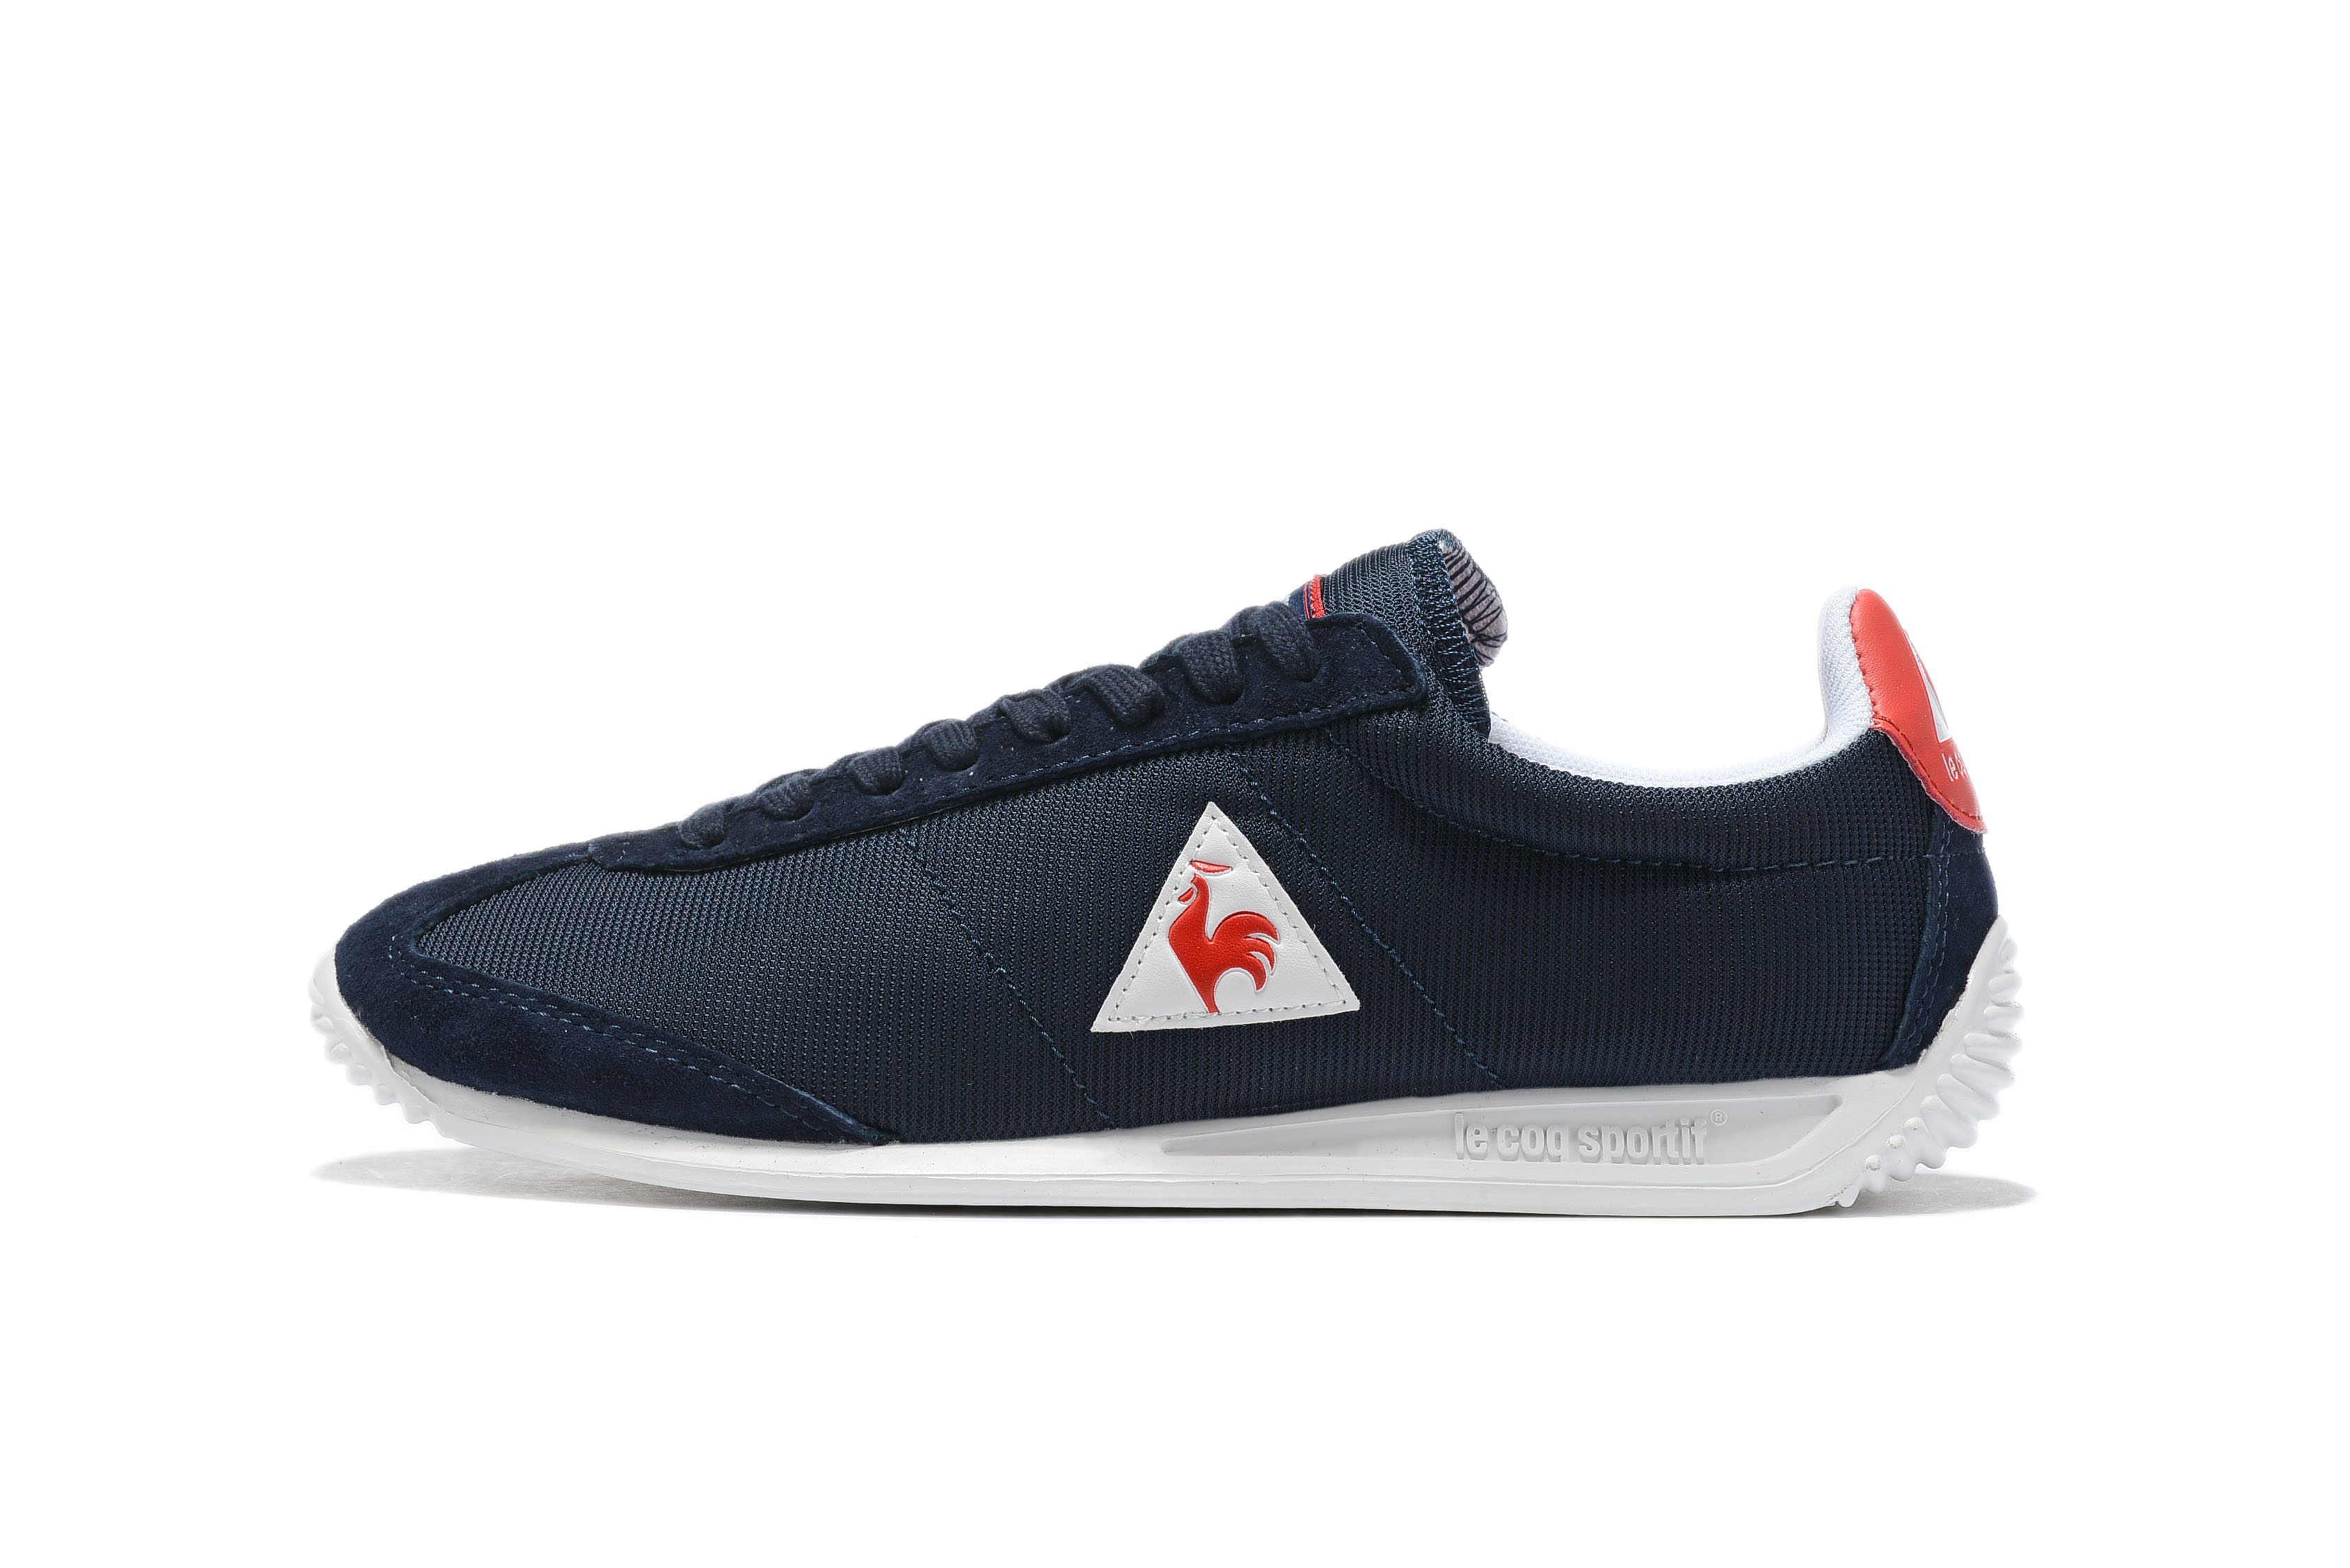 2020 Genuine Le Coq Sportif Top Quality Casual Men's Lightweight Shoes Fashion Breathable Canvas Shoes Men Women Couple Shoes